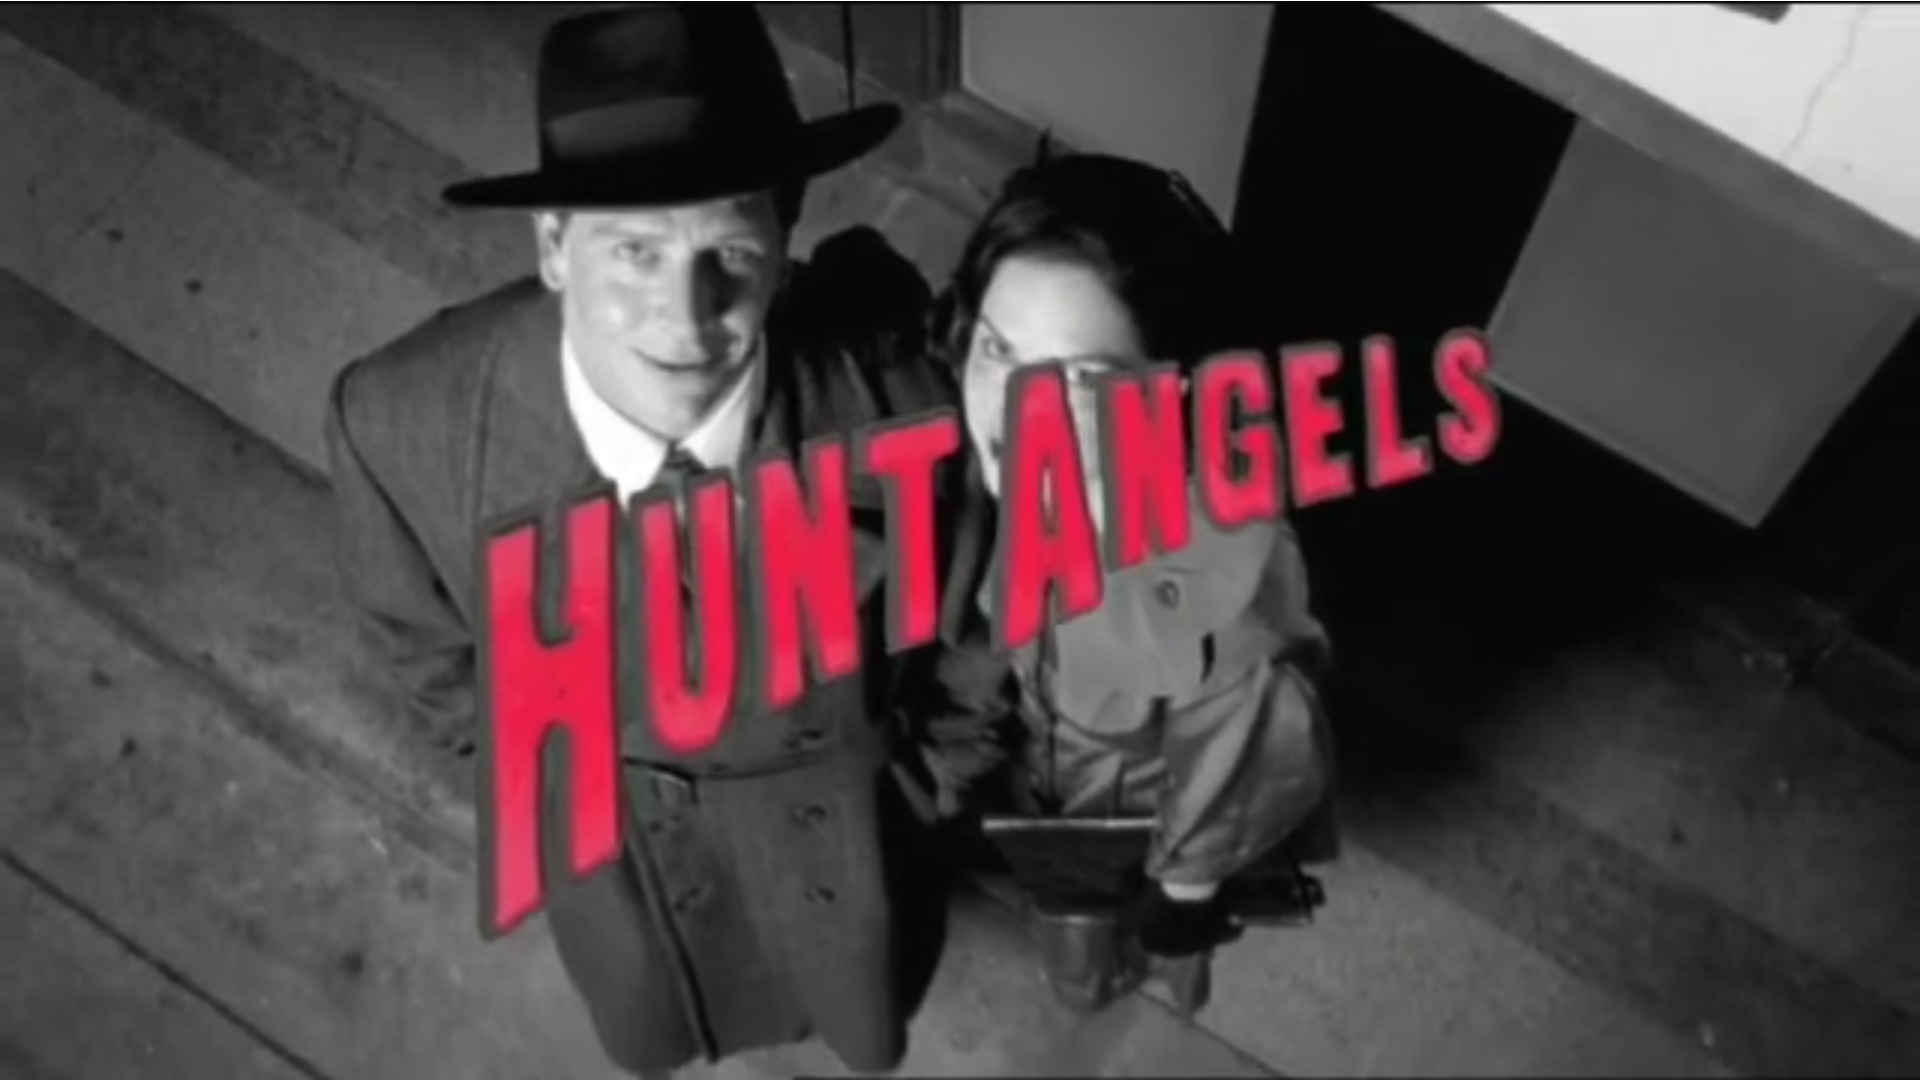 Watch Full Movie - Hunt Angels